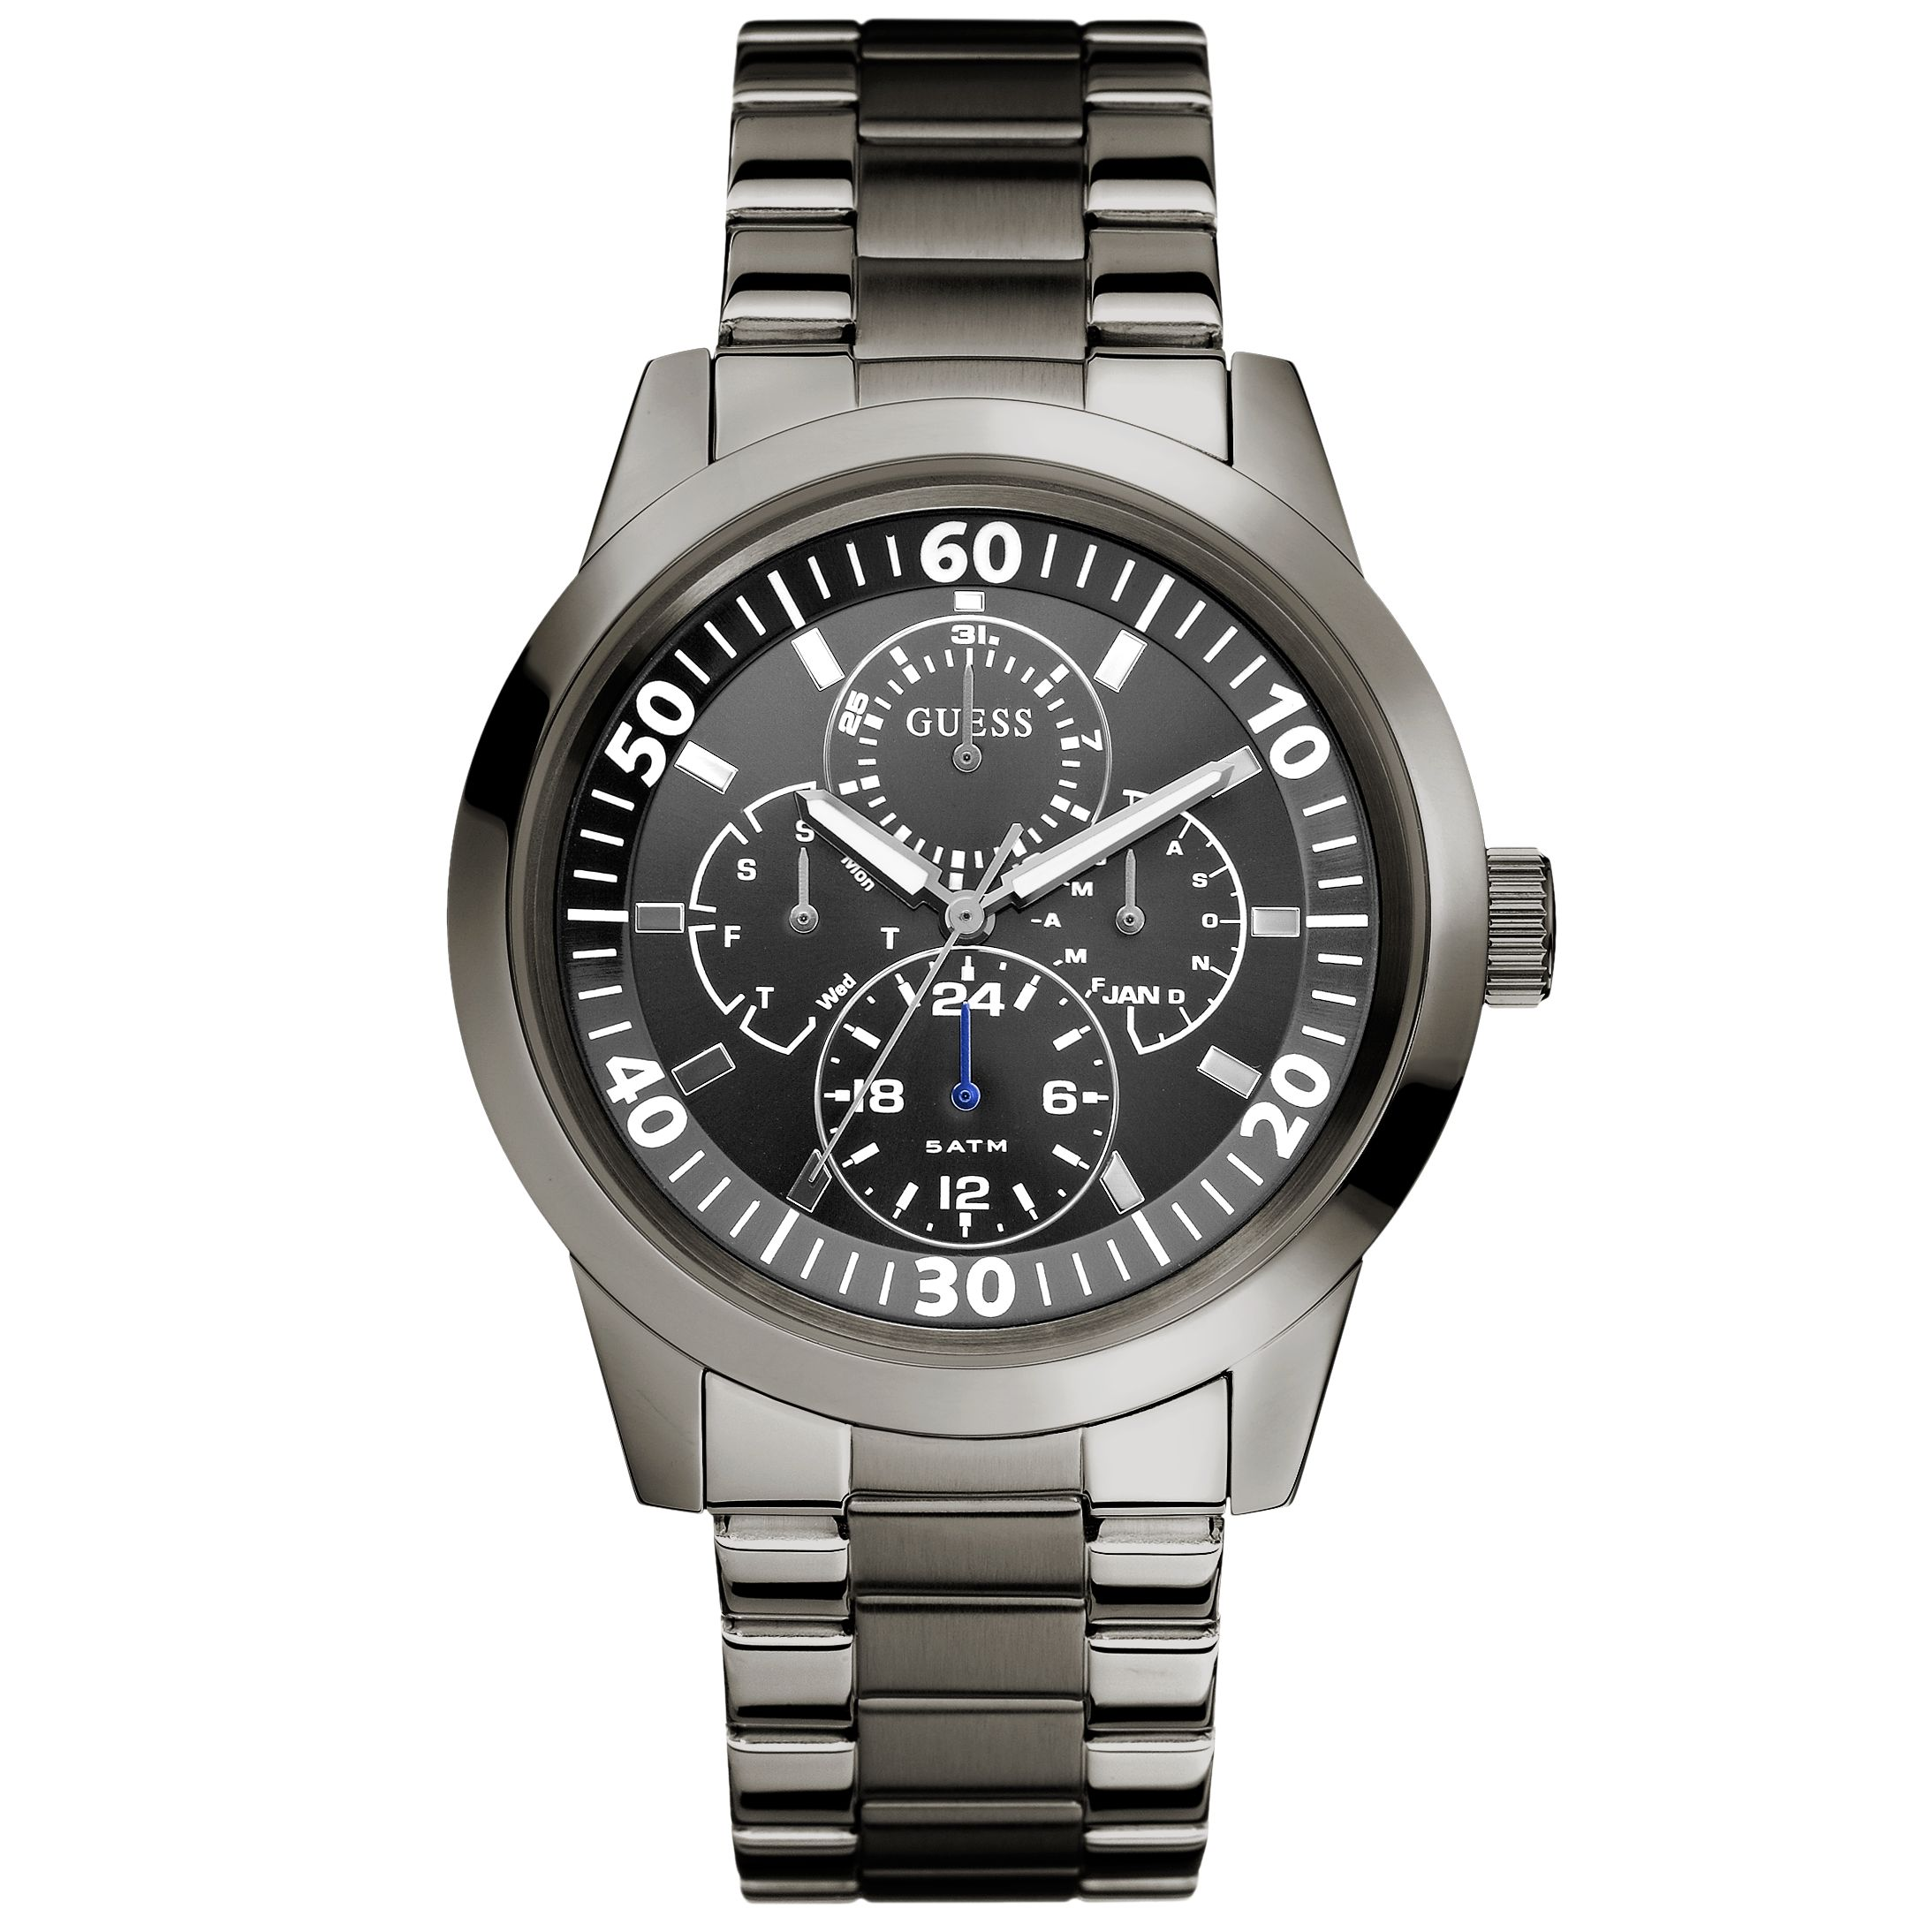 guess watches buy guess watches online page 25 watches org uk guess w12623g1 men s gunmetal newport bracelet watch